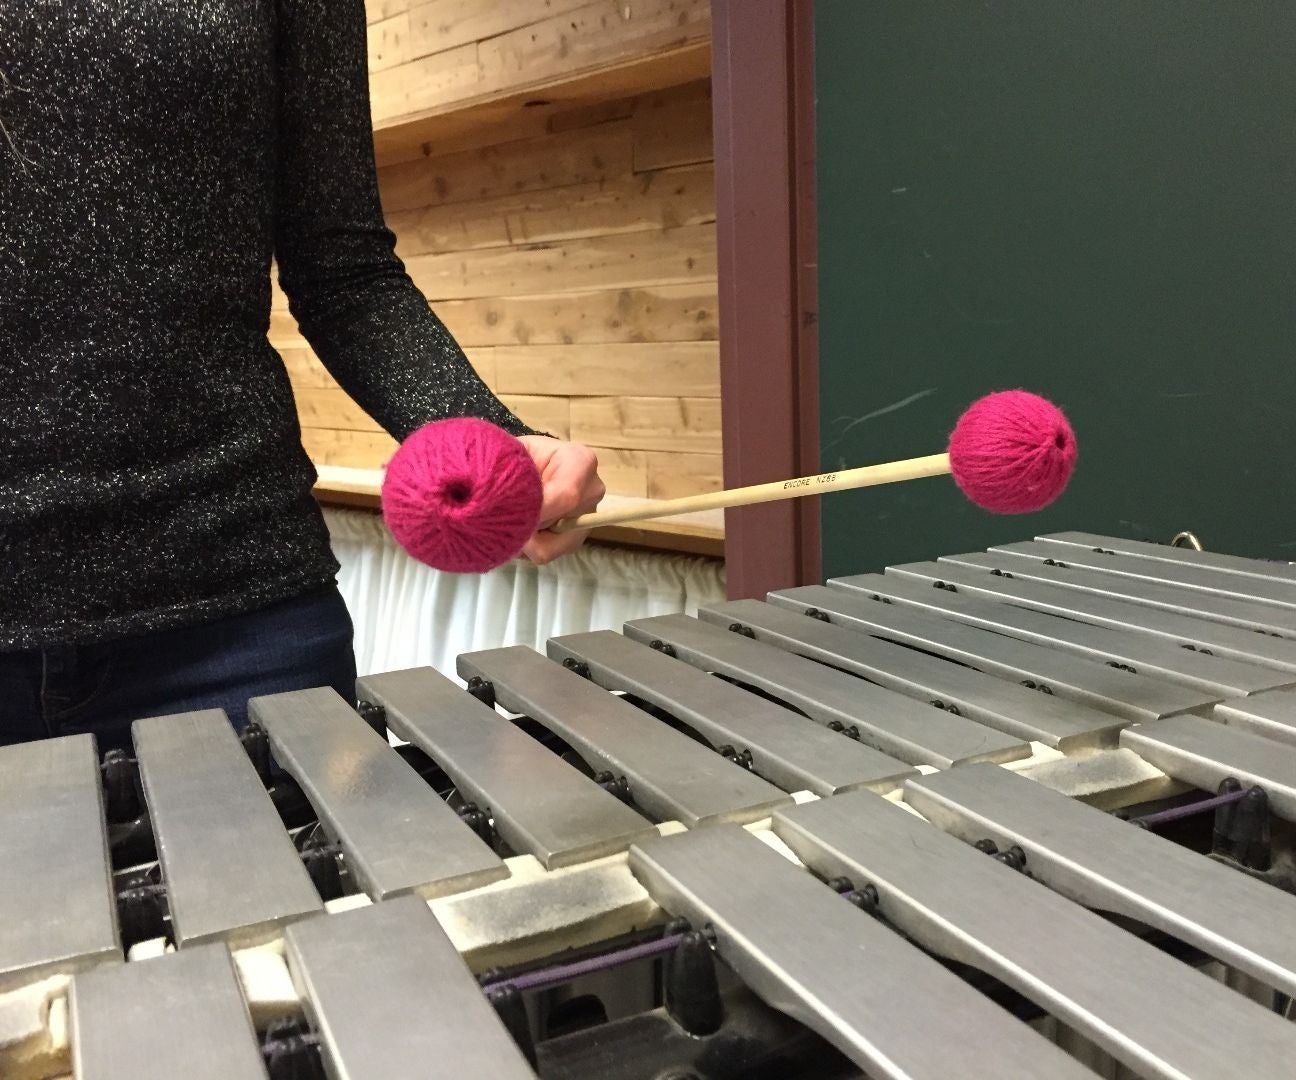 Four Mallet Steven's Grip: Holding Mallets, Piston Stroke, and Rotation Stroke